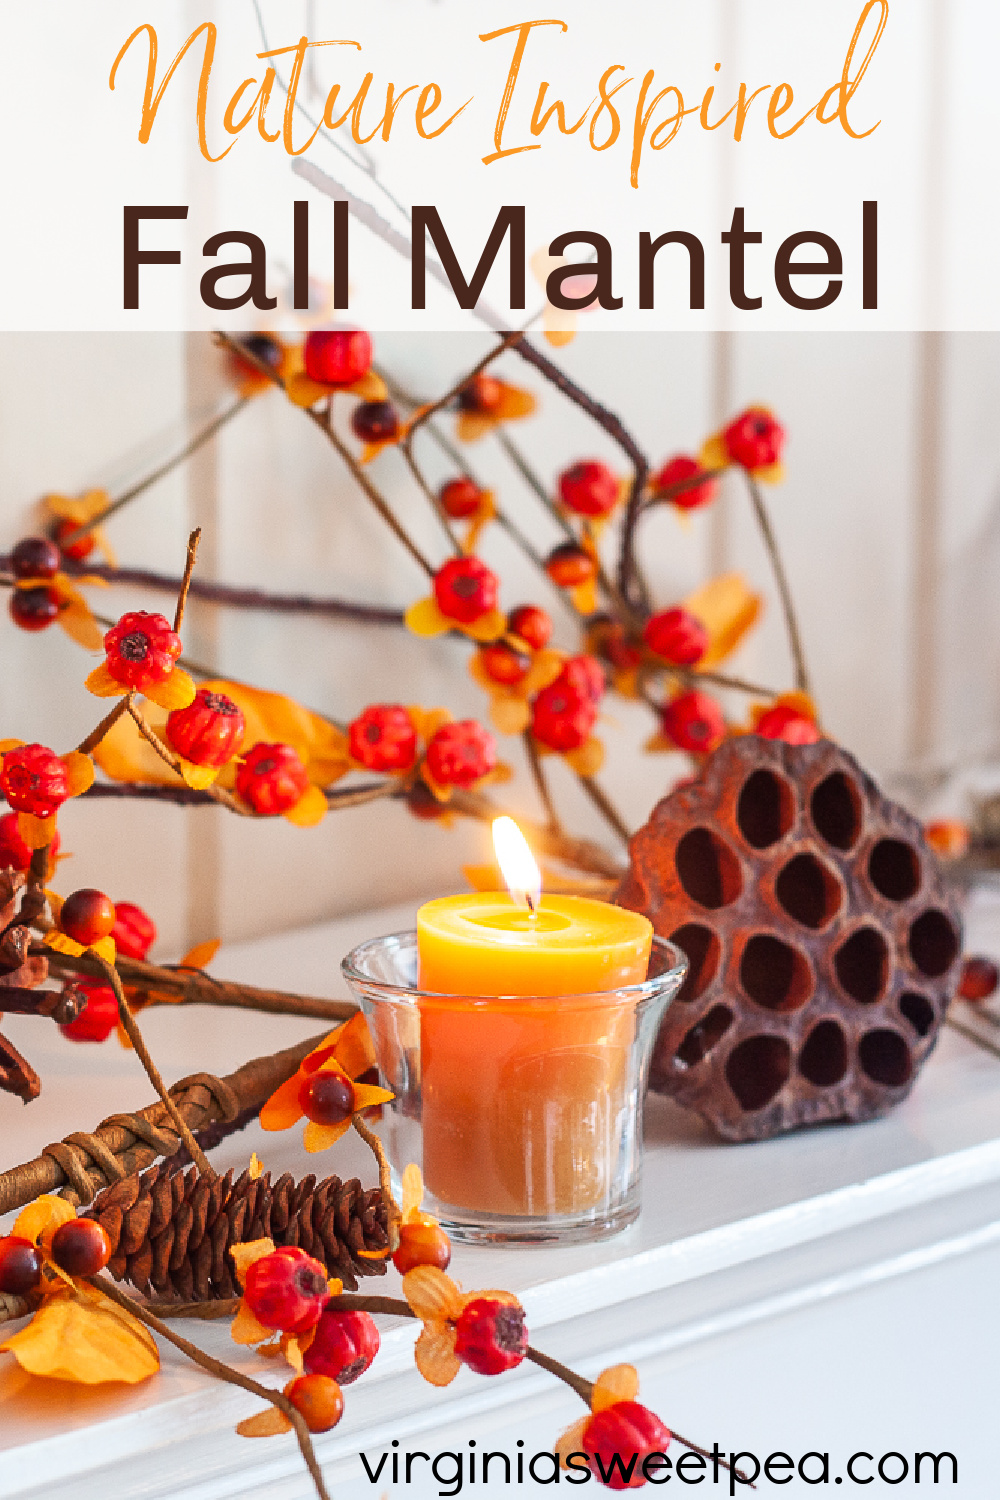 Nature Inspired Fall Mantel Decor - Get fall mantel ideas along with tips for how to decorate a mantel for fall using items from nature.  #fallmantel #fallmantelideas #falldecor #falldecorations via @spaula